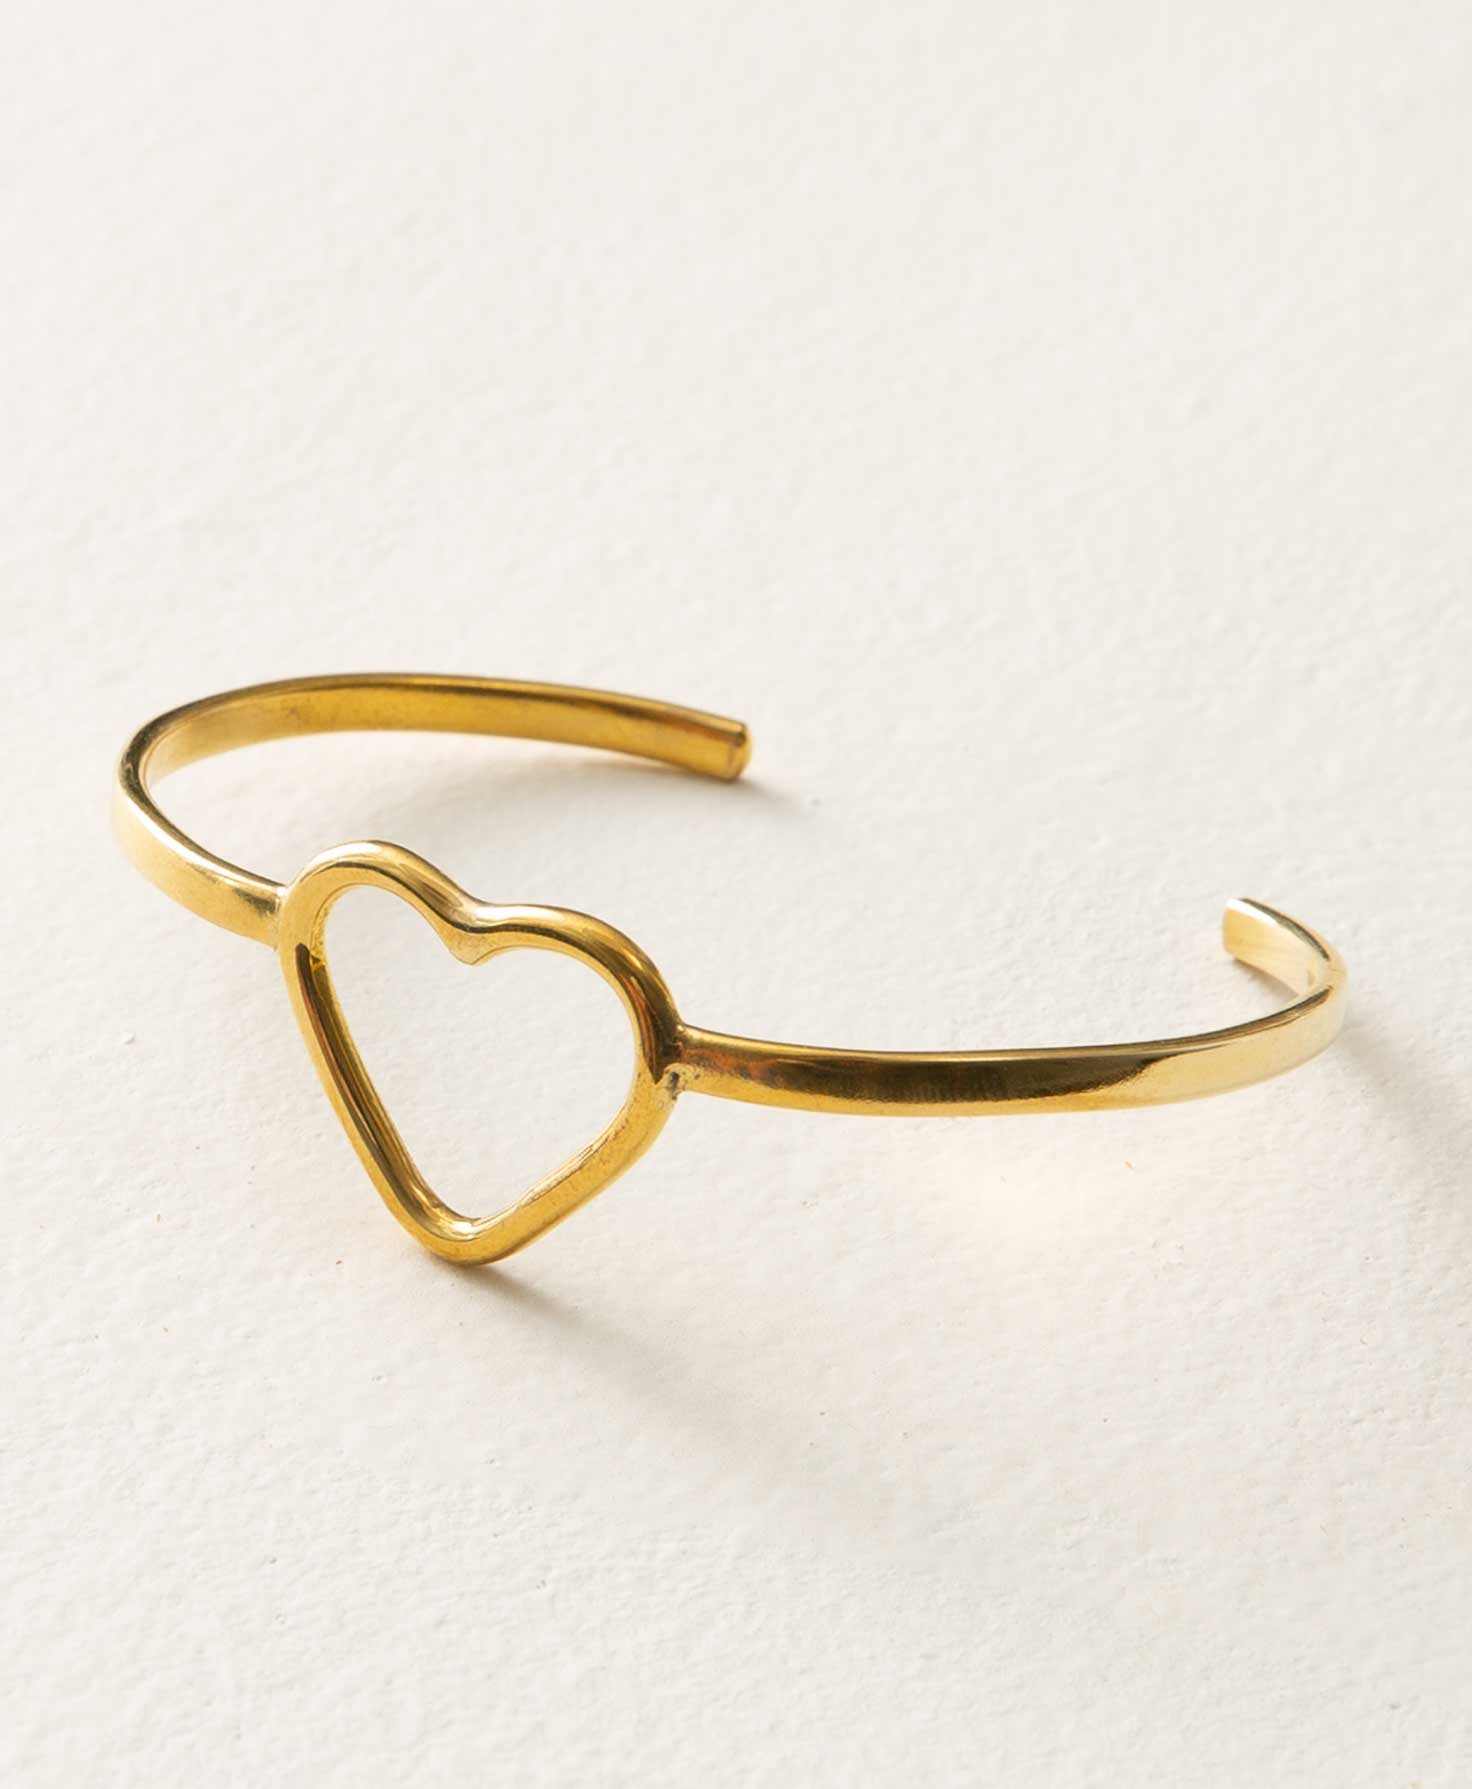 The Expression Cuff sits on a white background. A thin, flat bar of brass curves around and meets a brass heart in the center of the bracelet. The heart is roughly one inch tall and wide. It is composed of a brass outline that forms its shape, and is open in the middle. There is an opening in the back of the cuff where it can be slid onto the wrist.